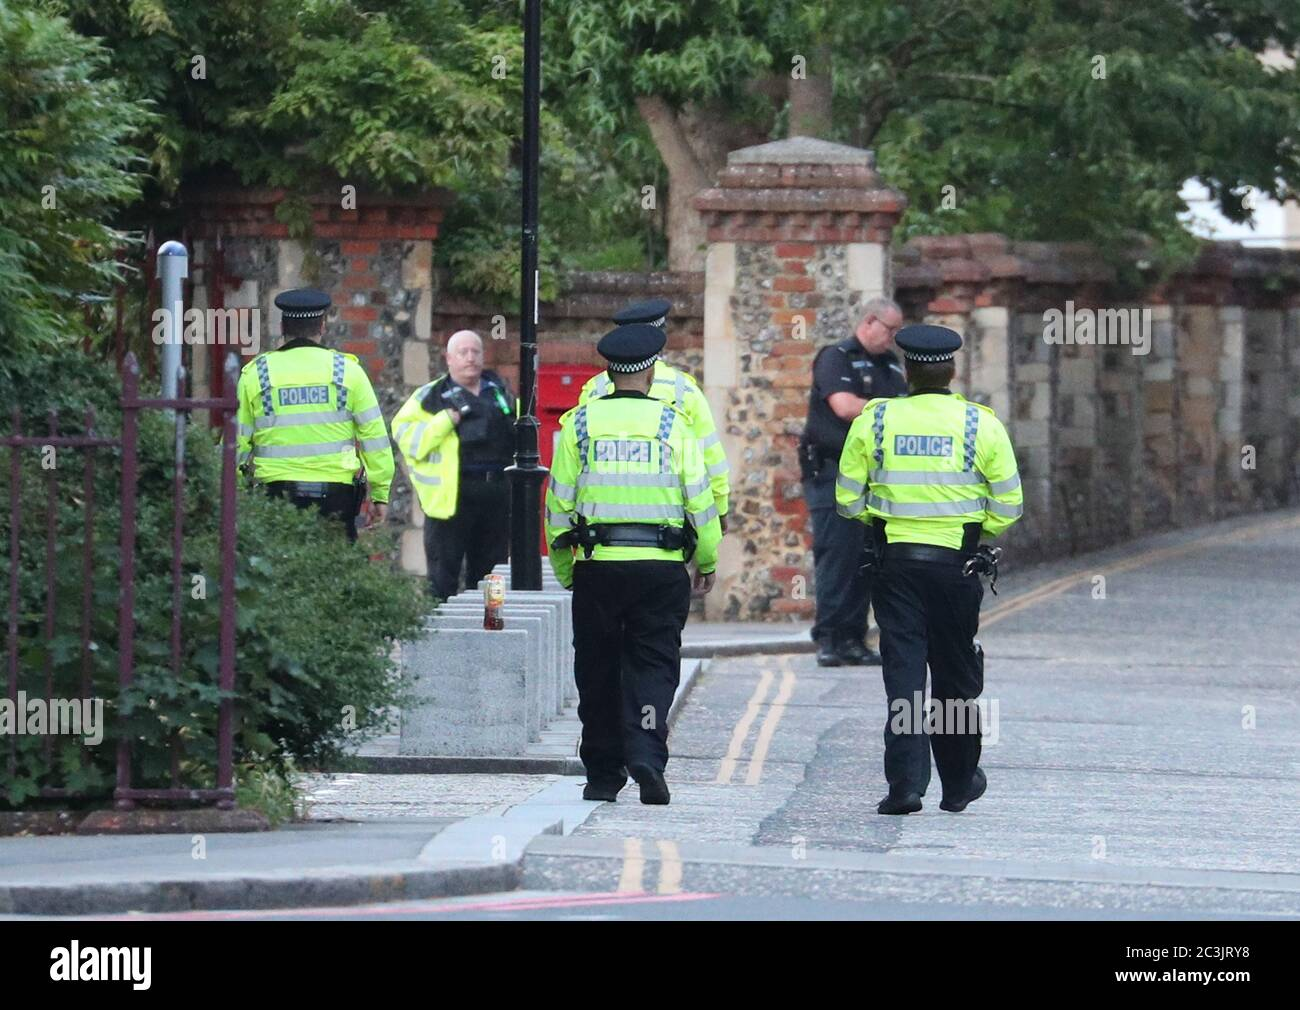 """Police at Forbury Gardens in Reading town centre where they are responding to a """"serious incident"""" Stock Photo"""